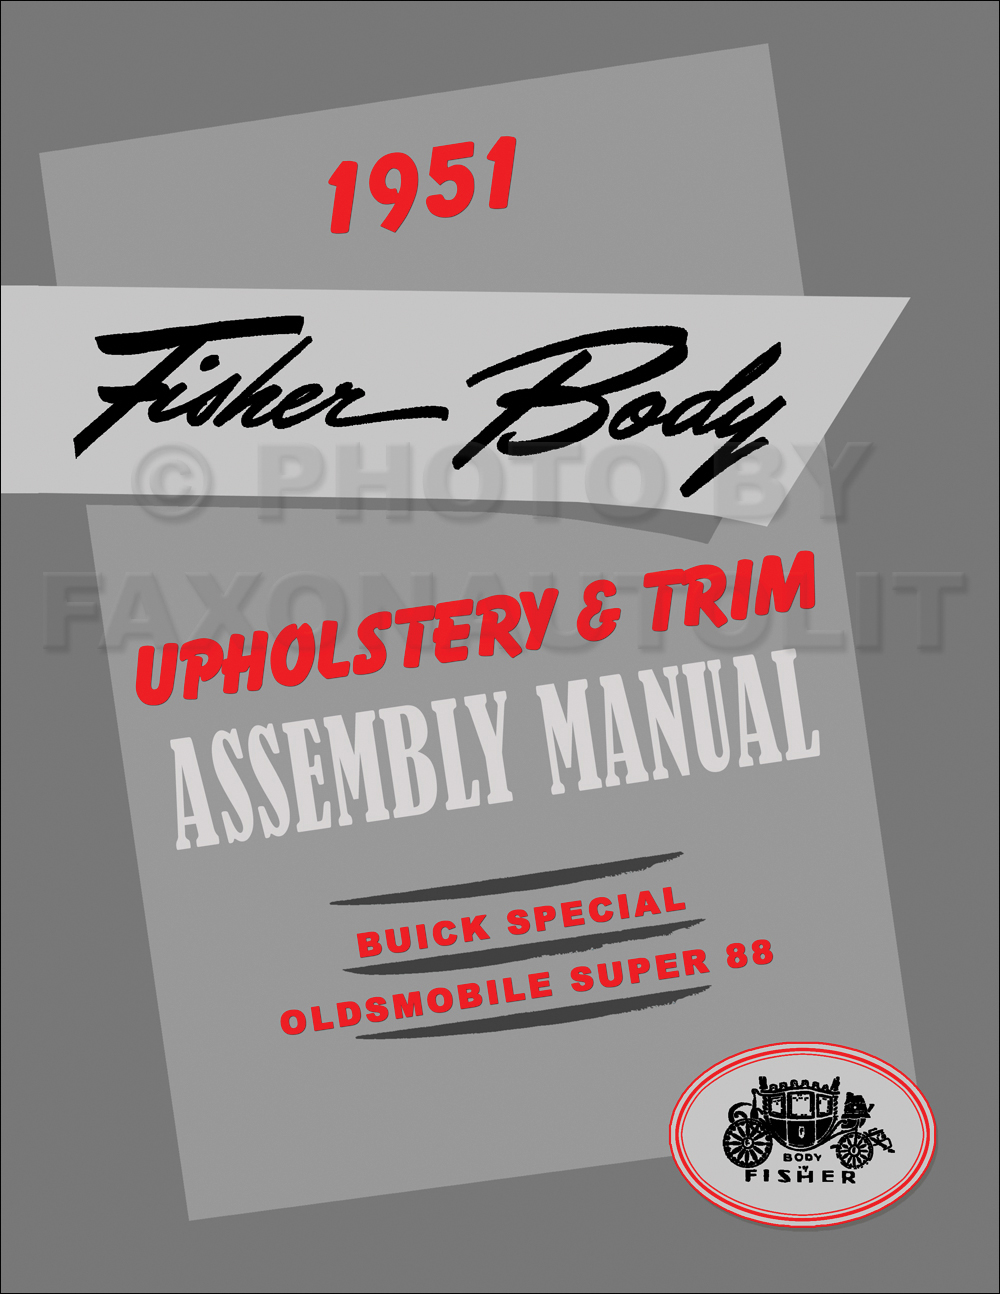 1951 Fisher Body Upholstery Assembly Manual Reprint Buick Special Olds Super 88